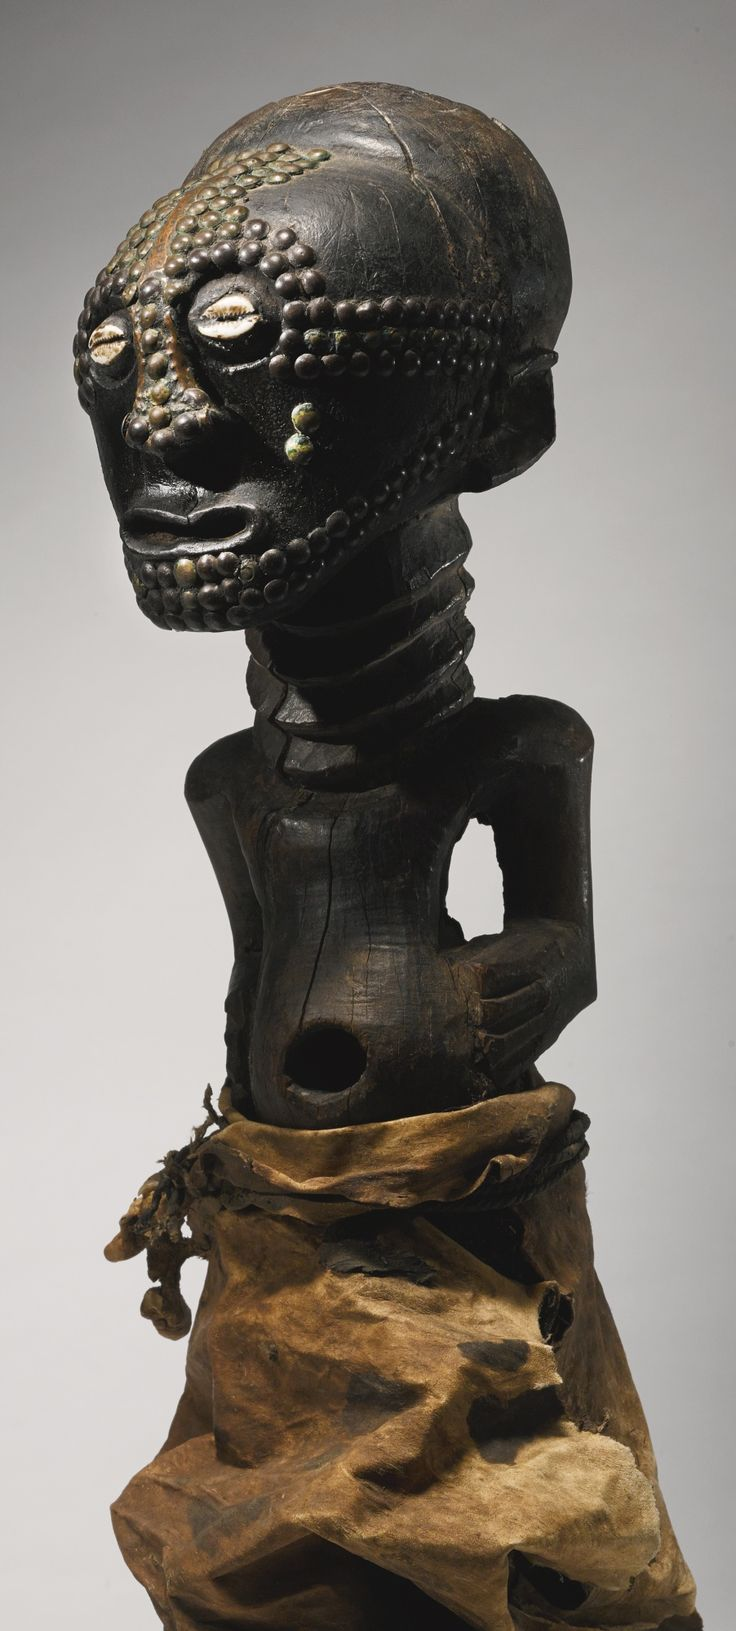 Songye Nkisi (Power Figure), DRC http://www.imodara.com/post/89574983609/dr-congo-songye-nkisi-nkishi-power-figure